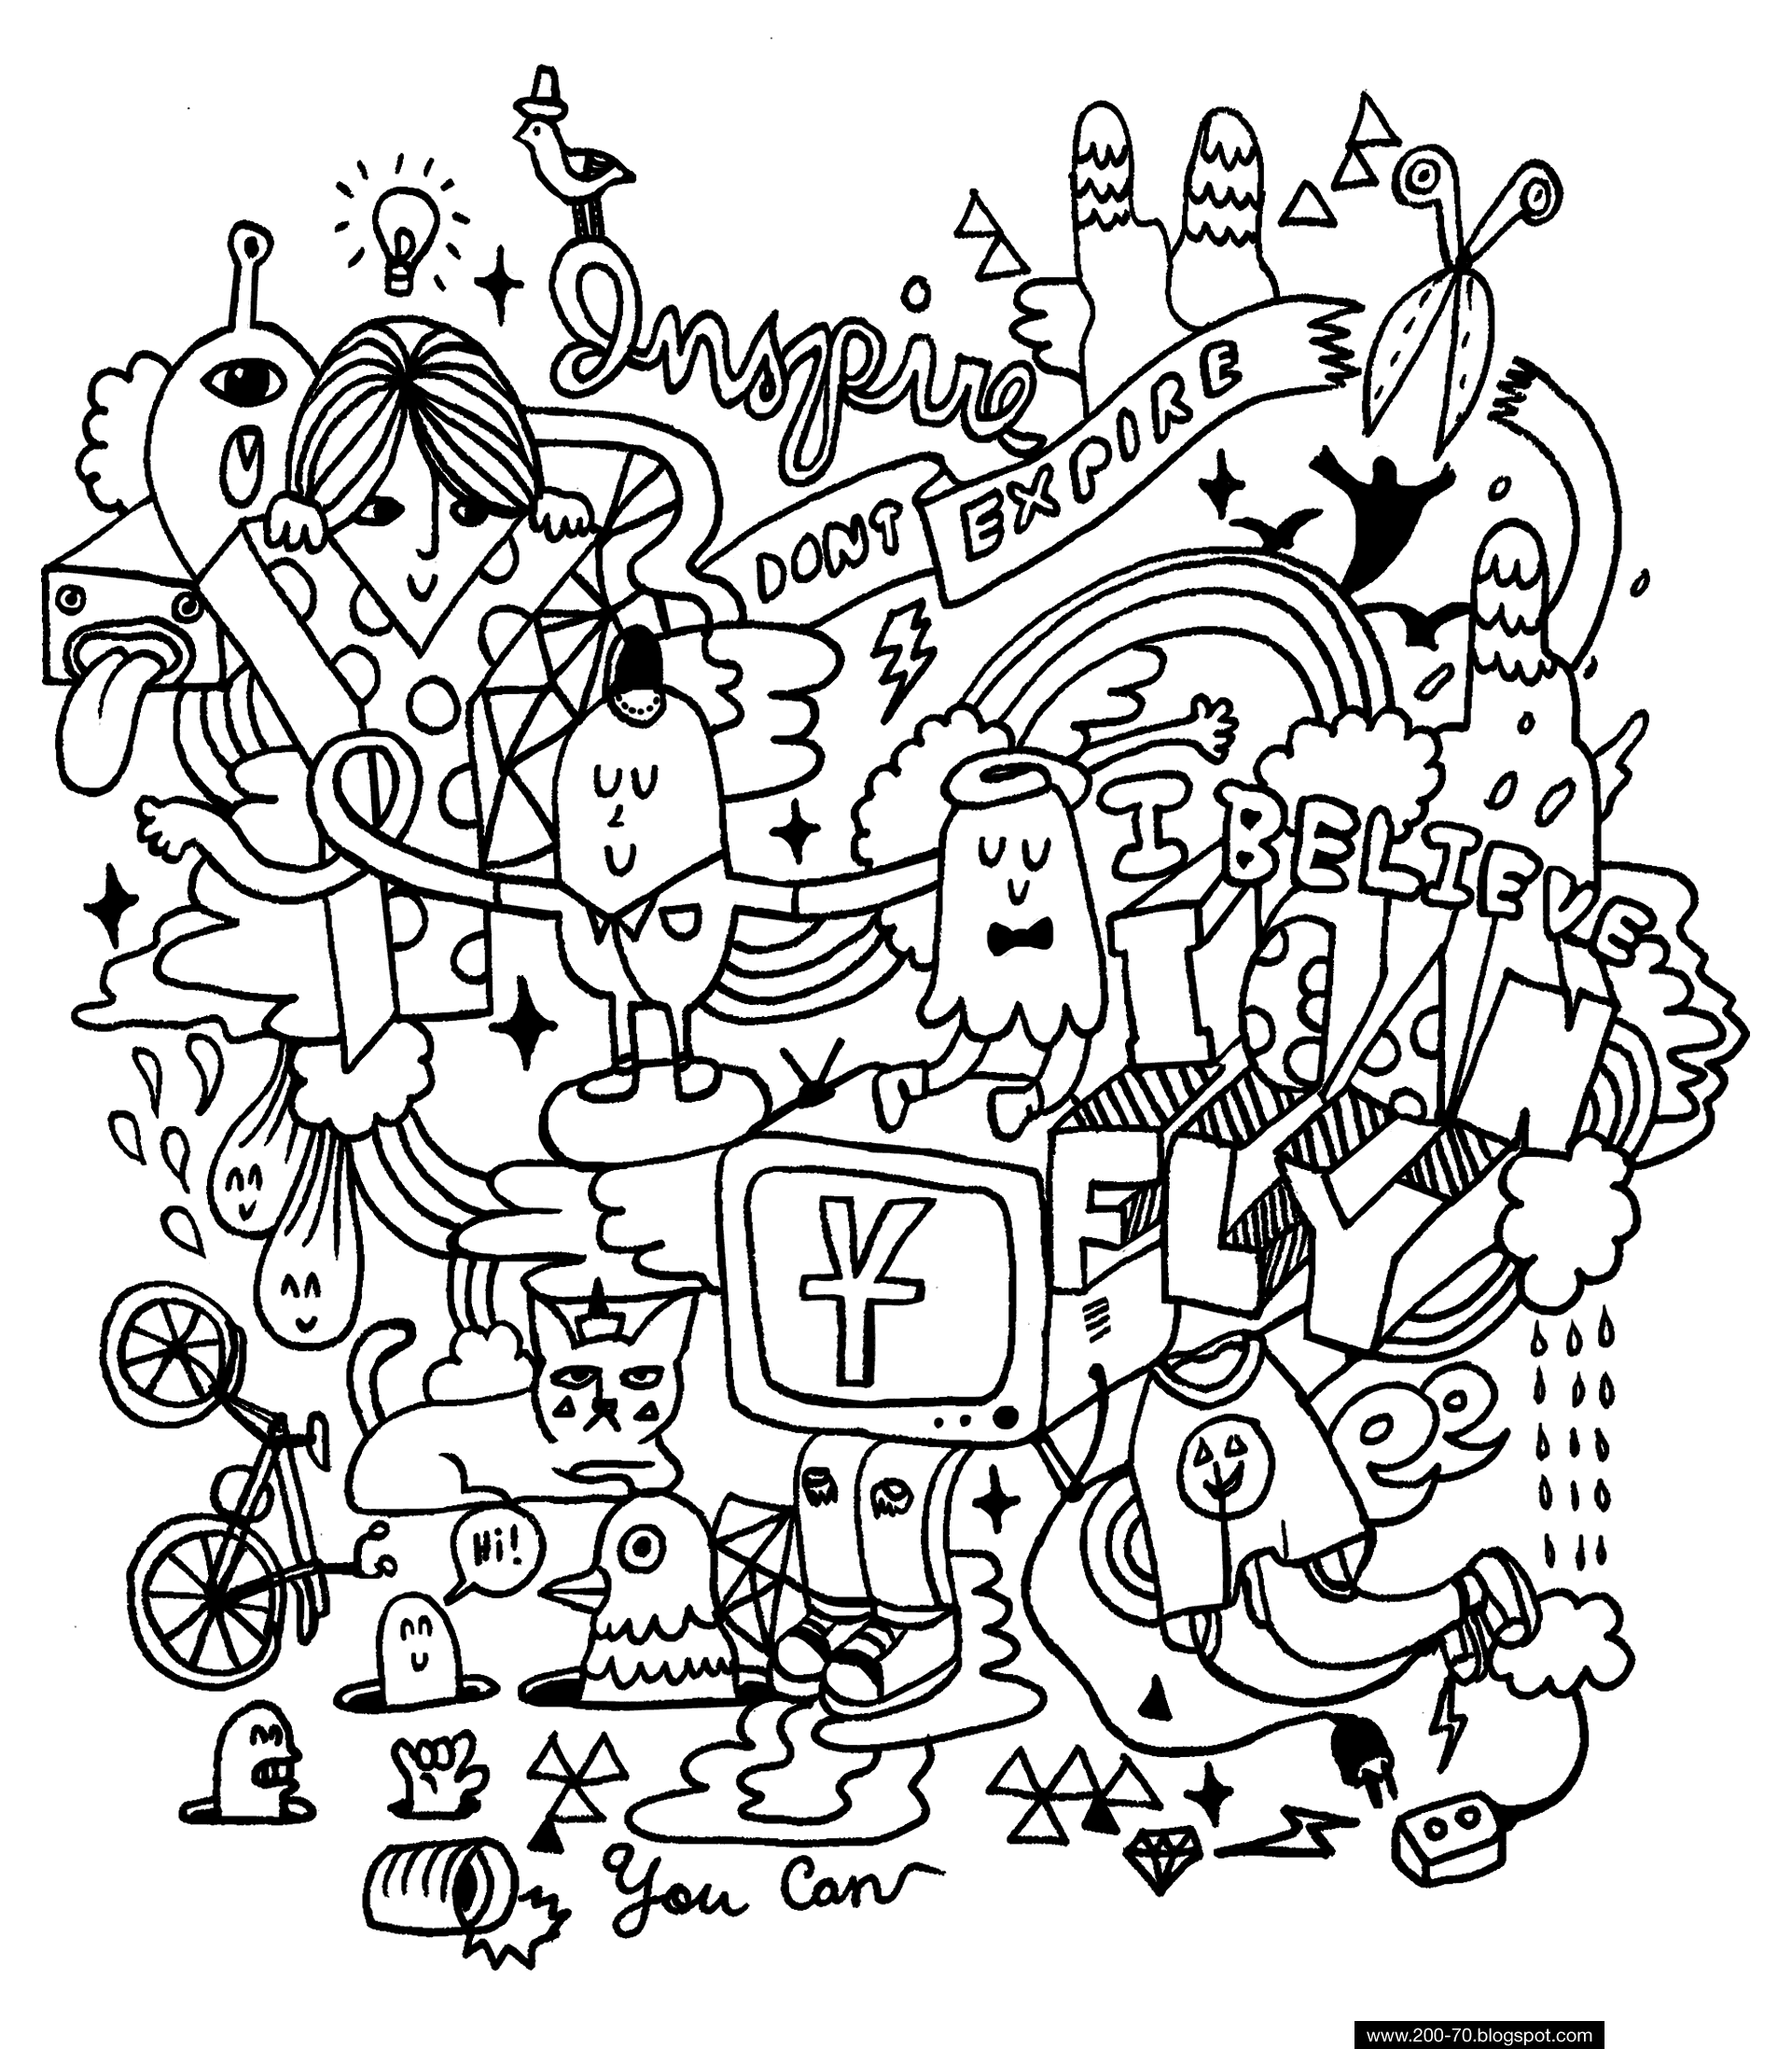 Fun Coloring For Kids And Adults A Rainy Day Delight